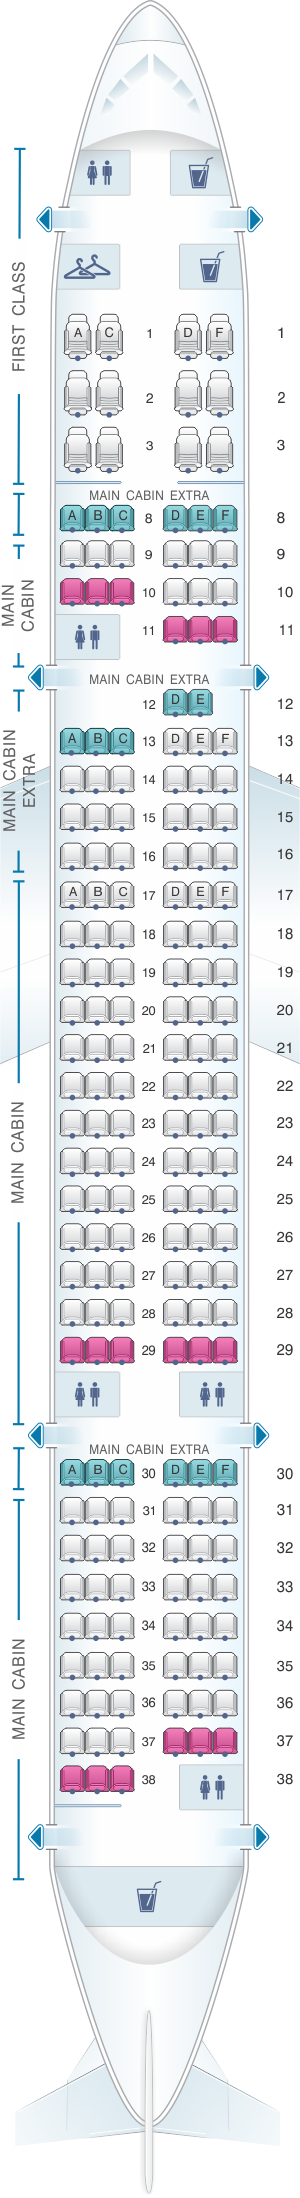 Seat map for American Airlines Boeing B757 200 188PAX